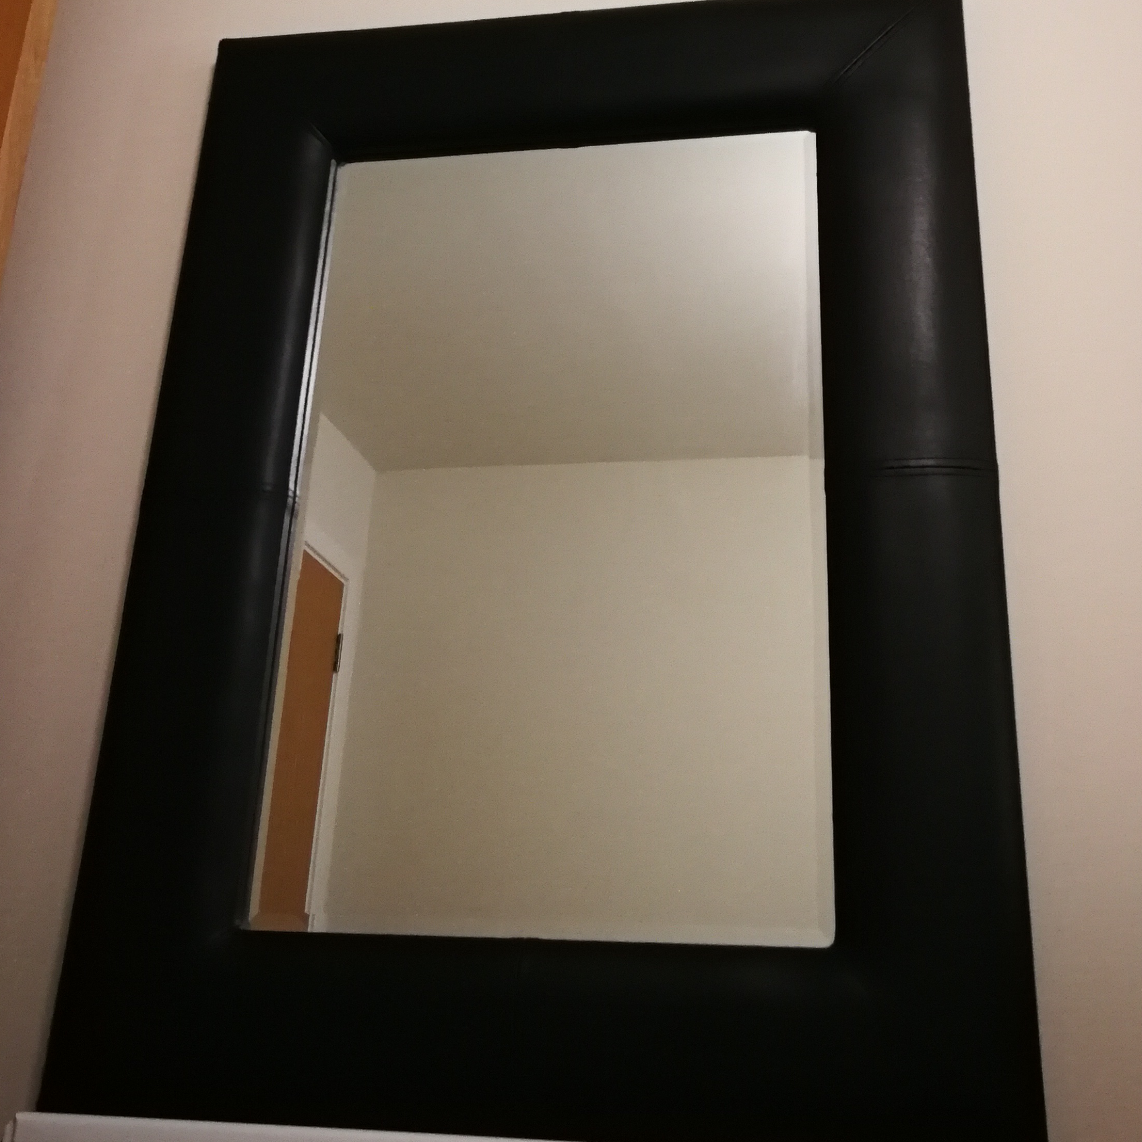 Large mirror with black cushion frame